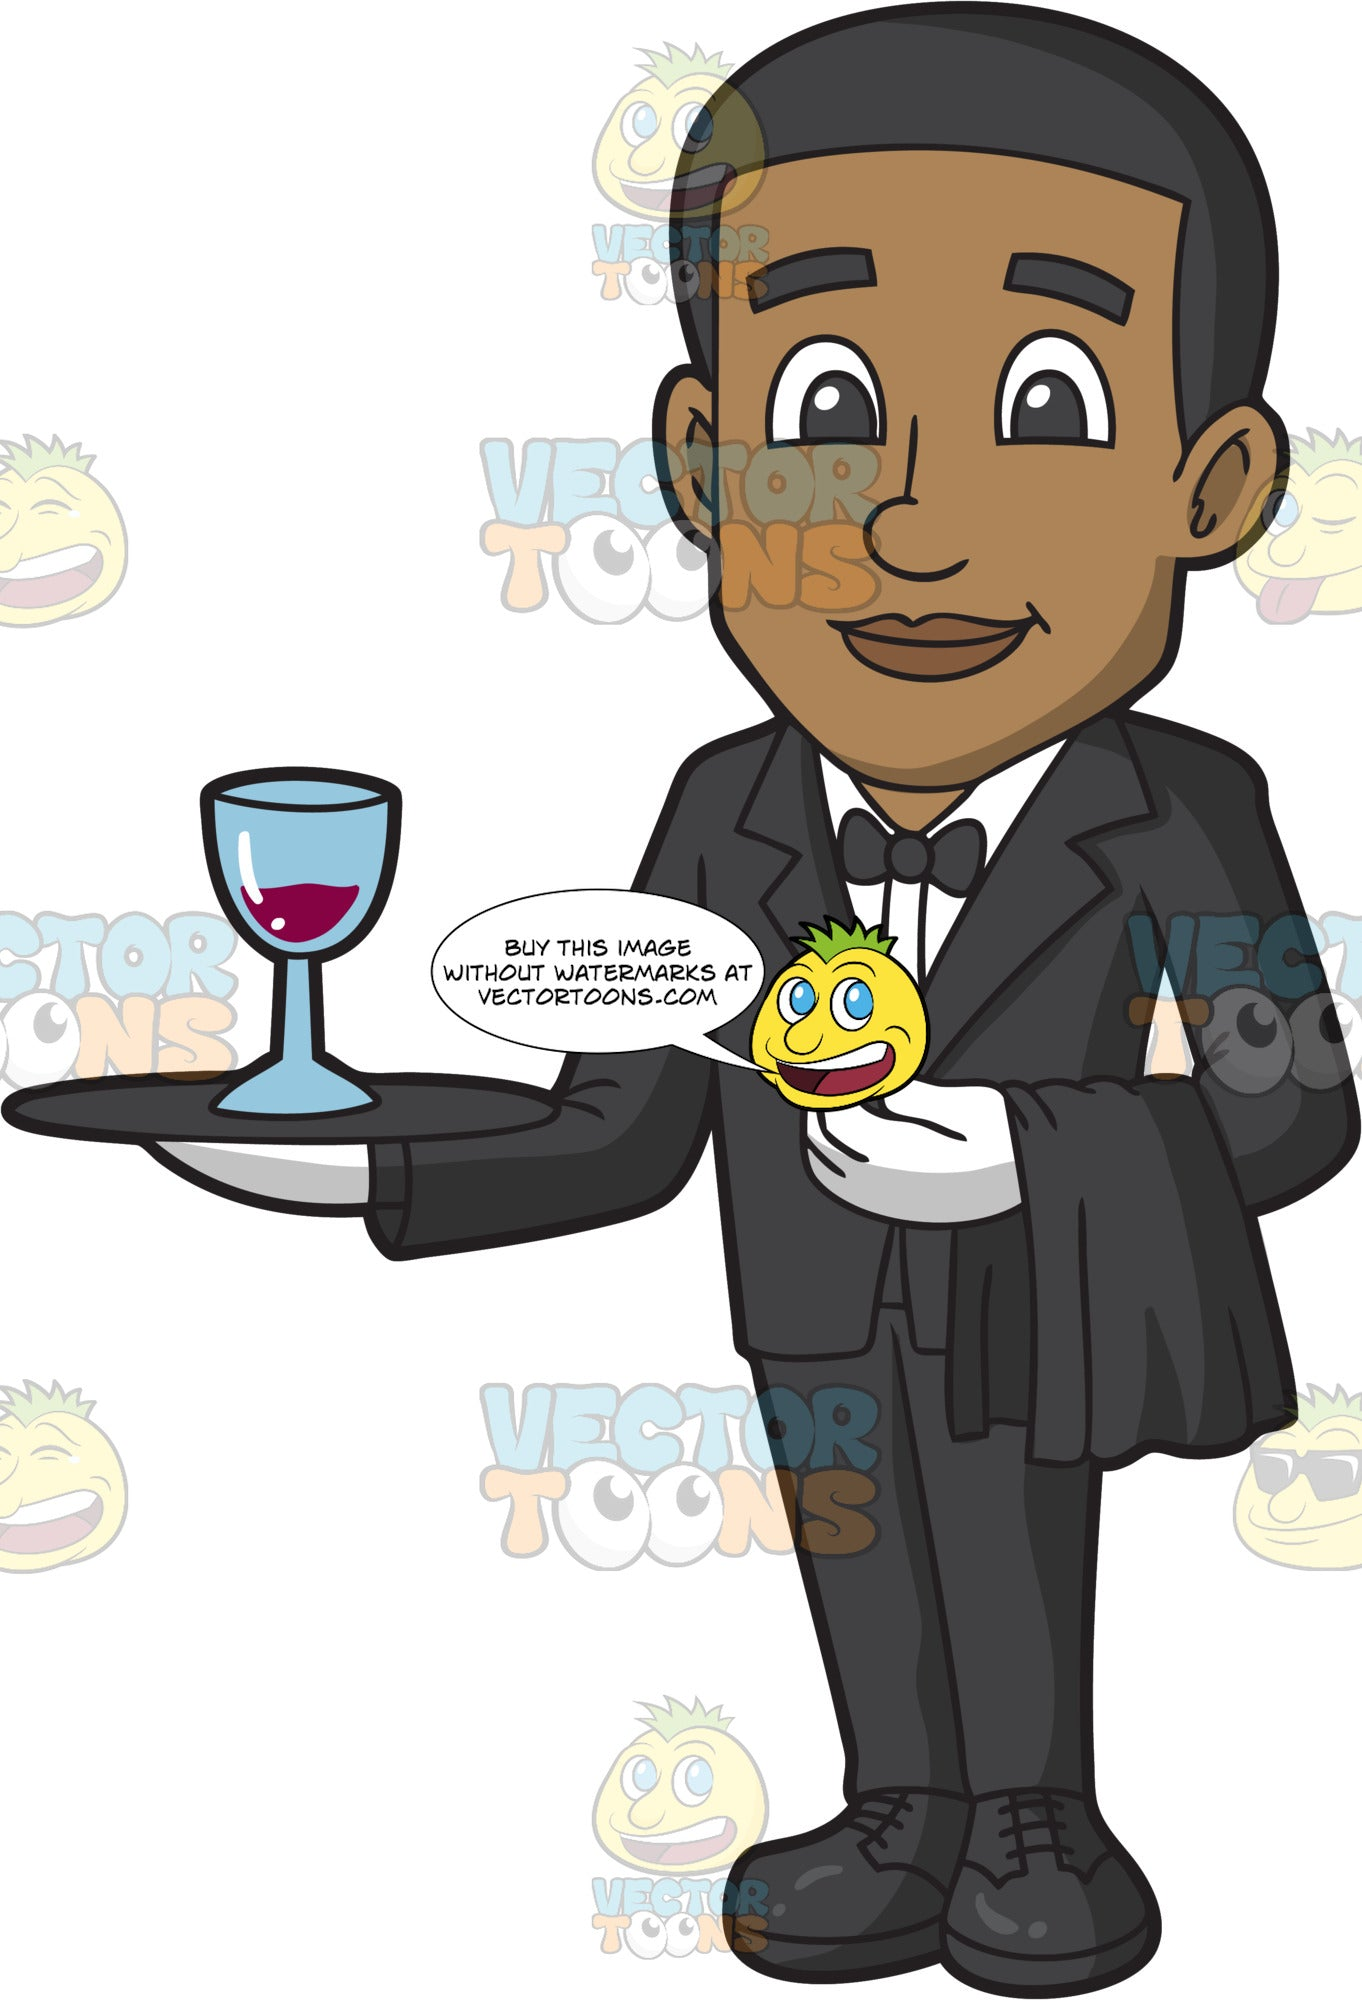 A Smiling Black Male Butler Holding A Tray With A Glass Of Red Wine